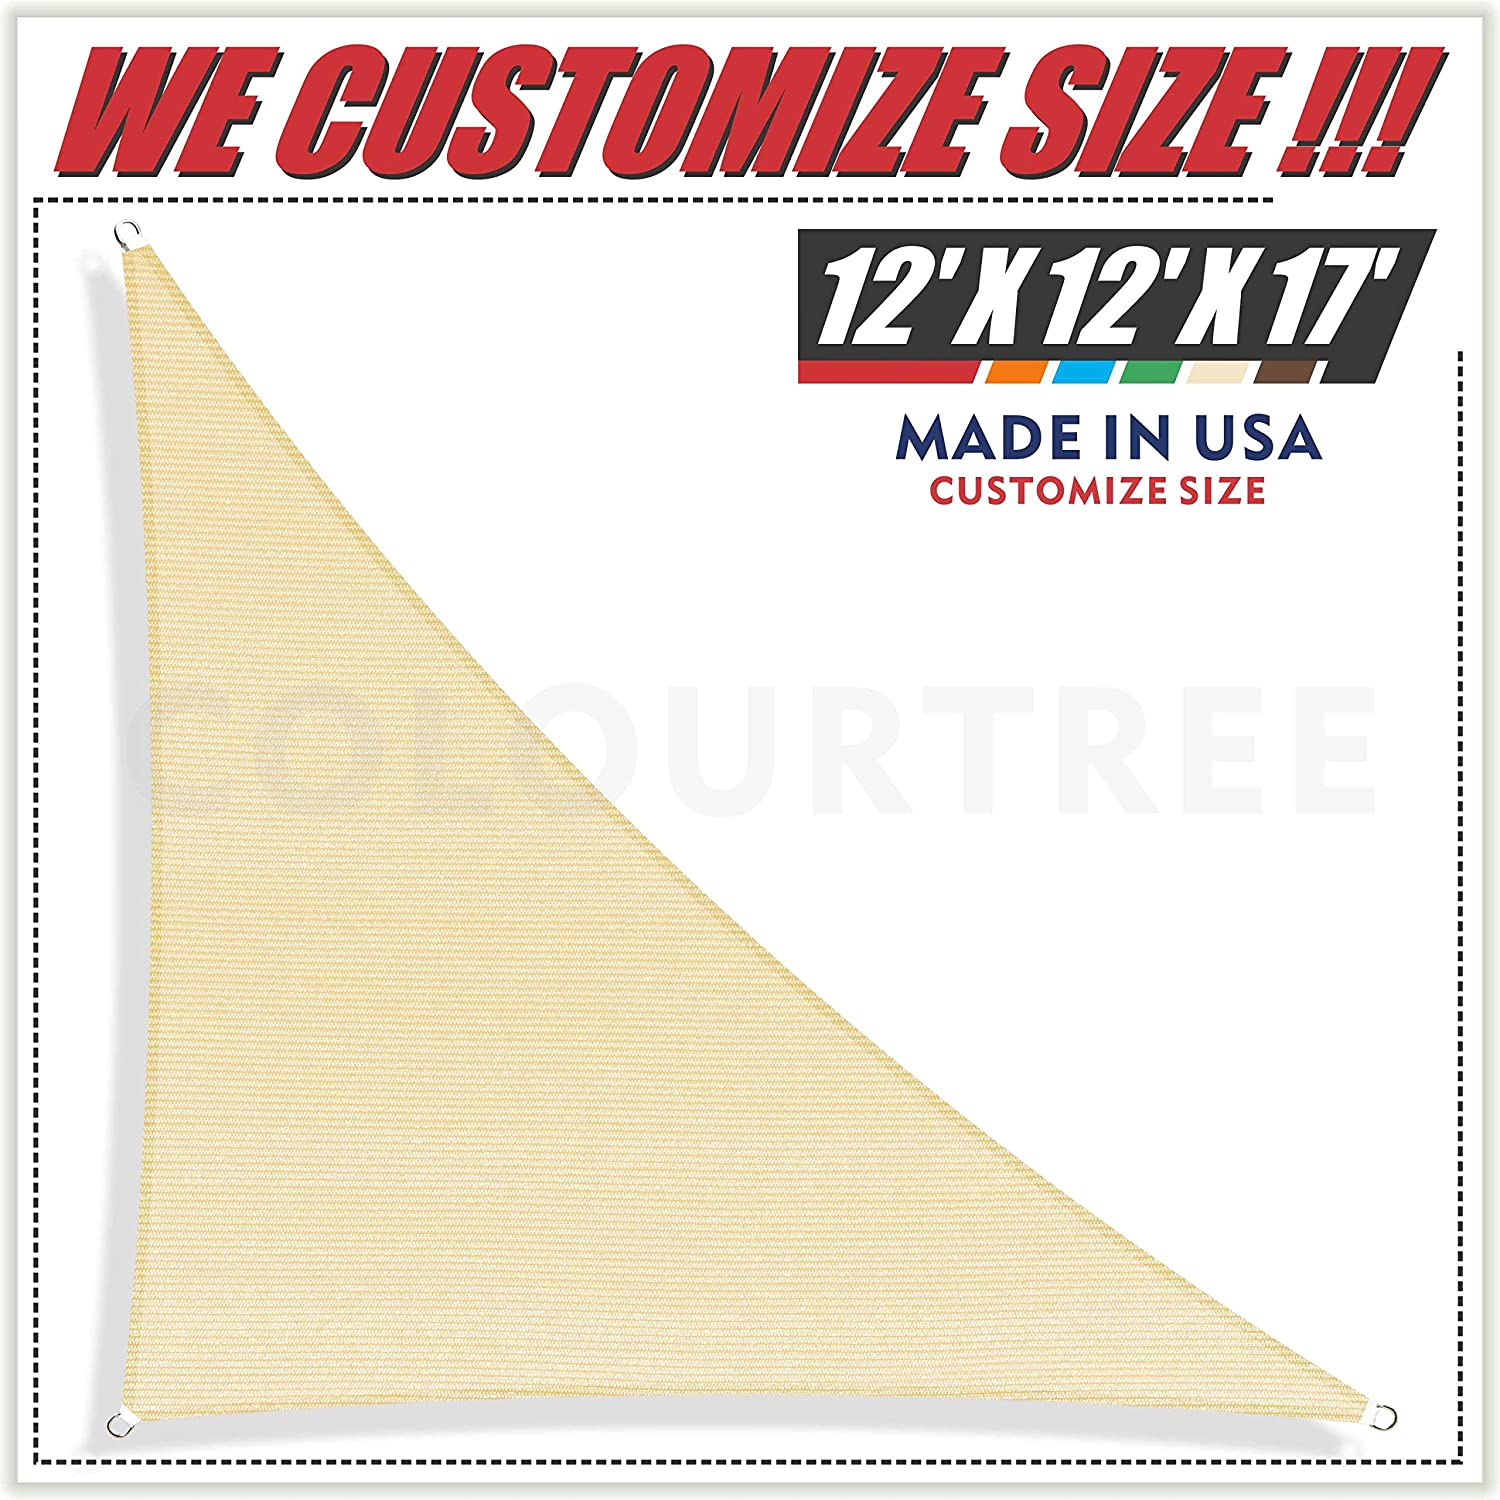 ColourTree 12 x 12 x 17 Beige Sun Shade Sail Right Triangle Canopy Awning Shelter Fabric Screen – UV Block UV Resistant Heavy Duty Commercial Grade – Outdoor Patio Carport – We Make Custom Size